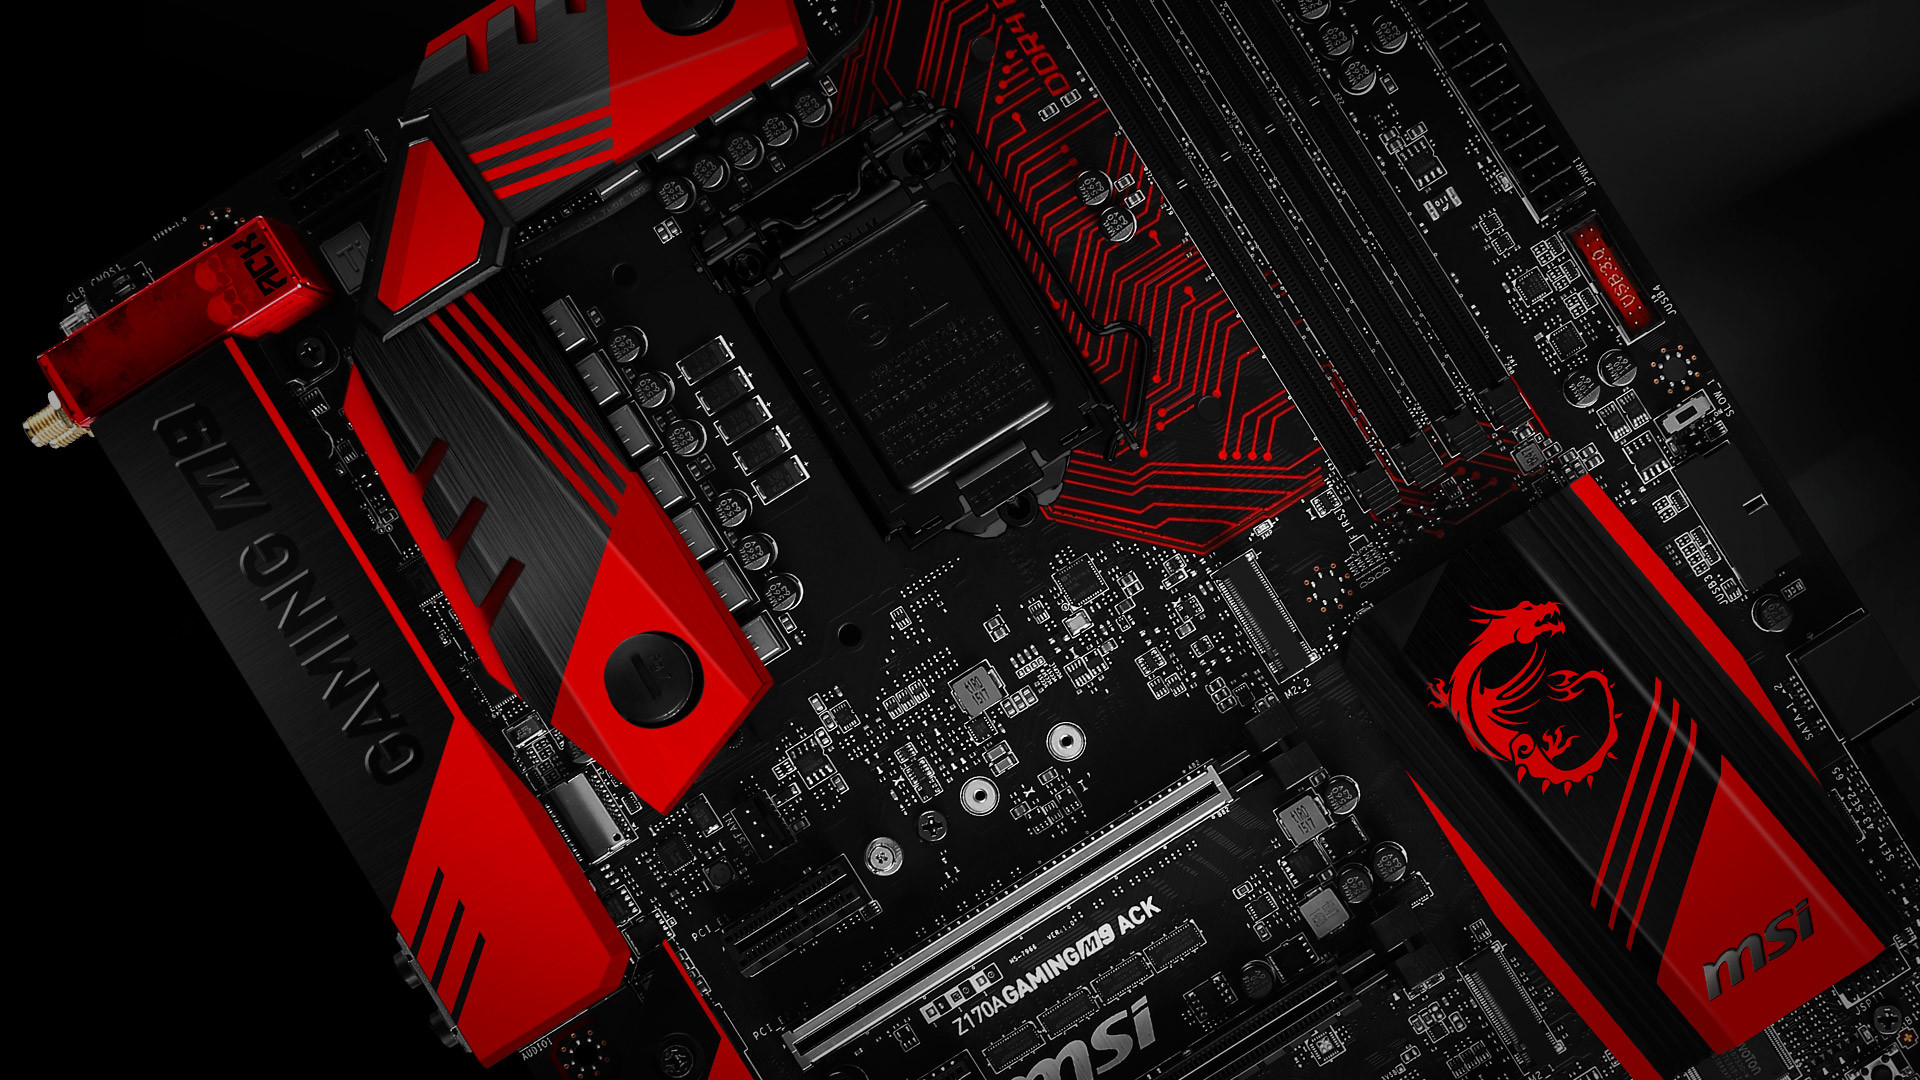 1920x1080 For Your Desktop: Motherboard Wallpapers, 44 Top Quality .